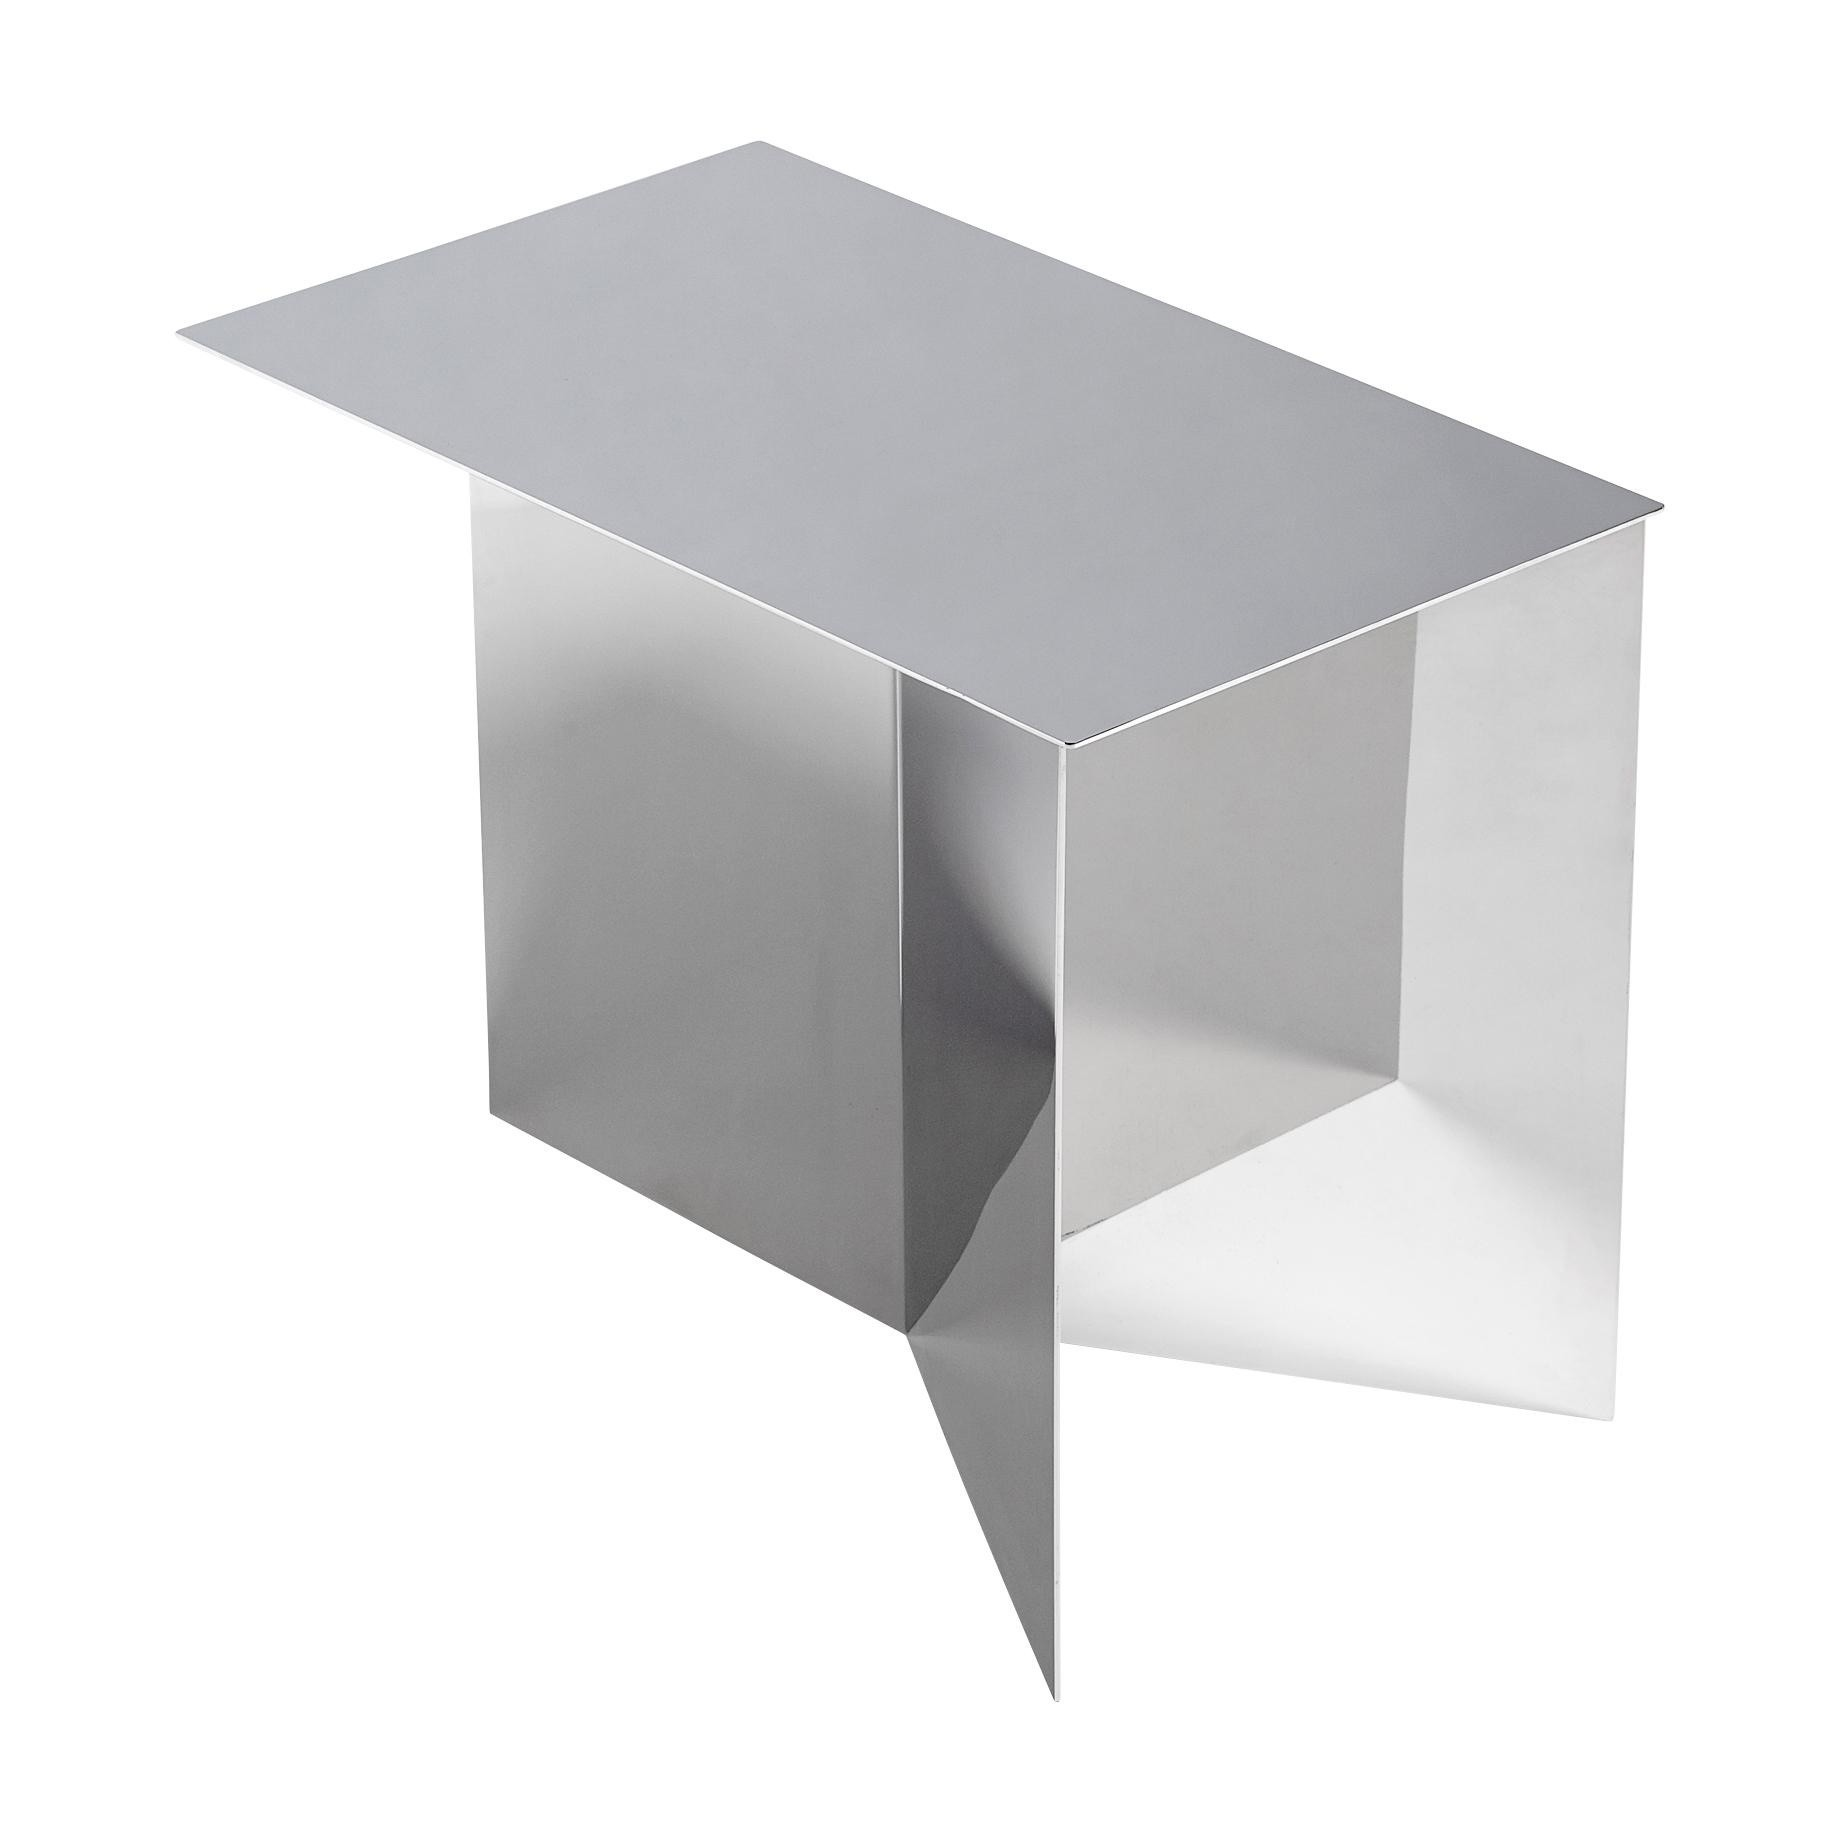 hay slit table oblong side table ambientedirect rh ambientedirect com